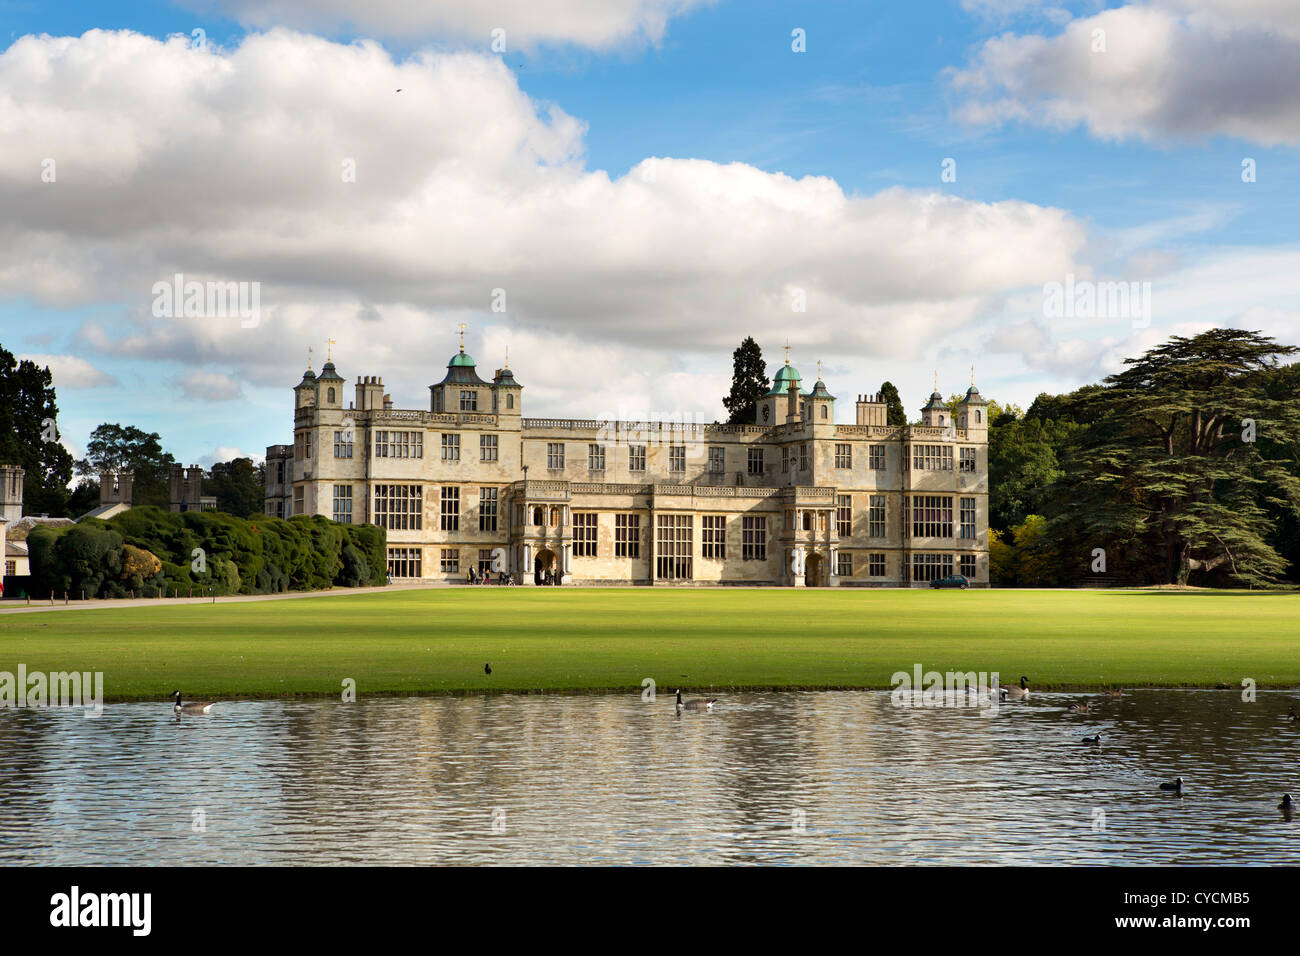 Audley End House and Gardens in Essex, England. - Stock Image